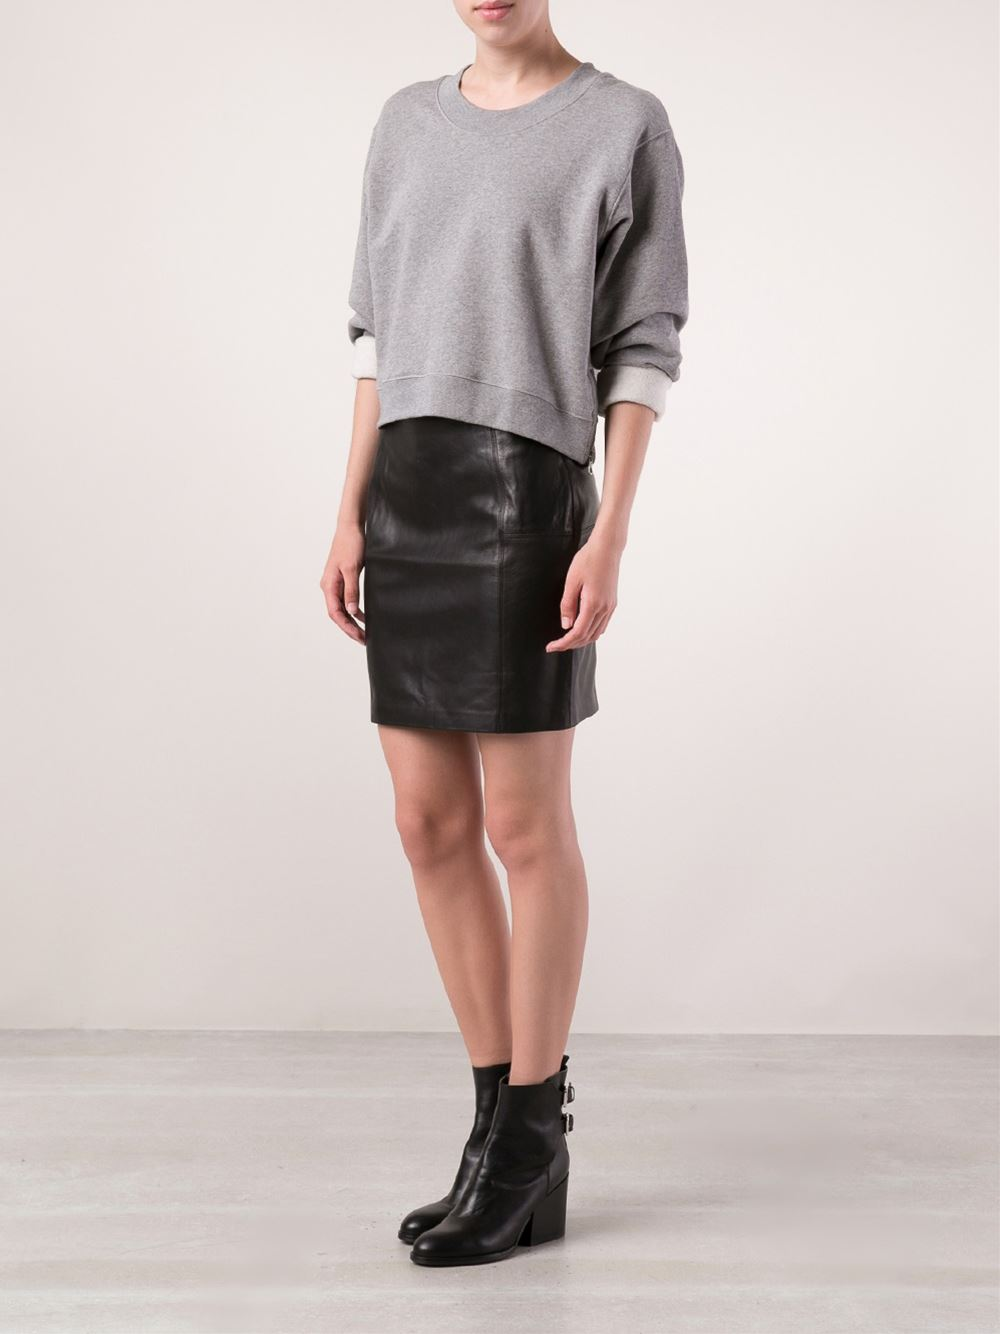 Blk Dnm Fitted Skirt - The Webster - Farfetch.com